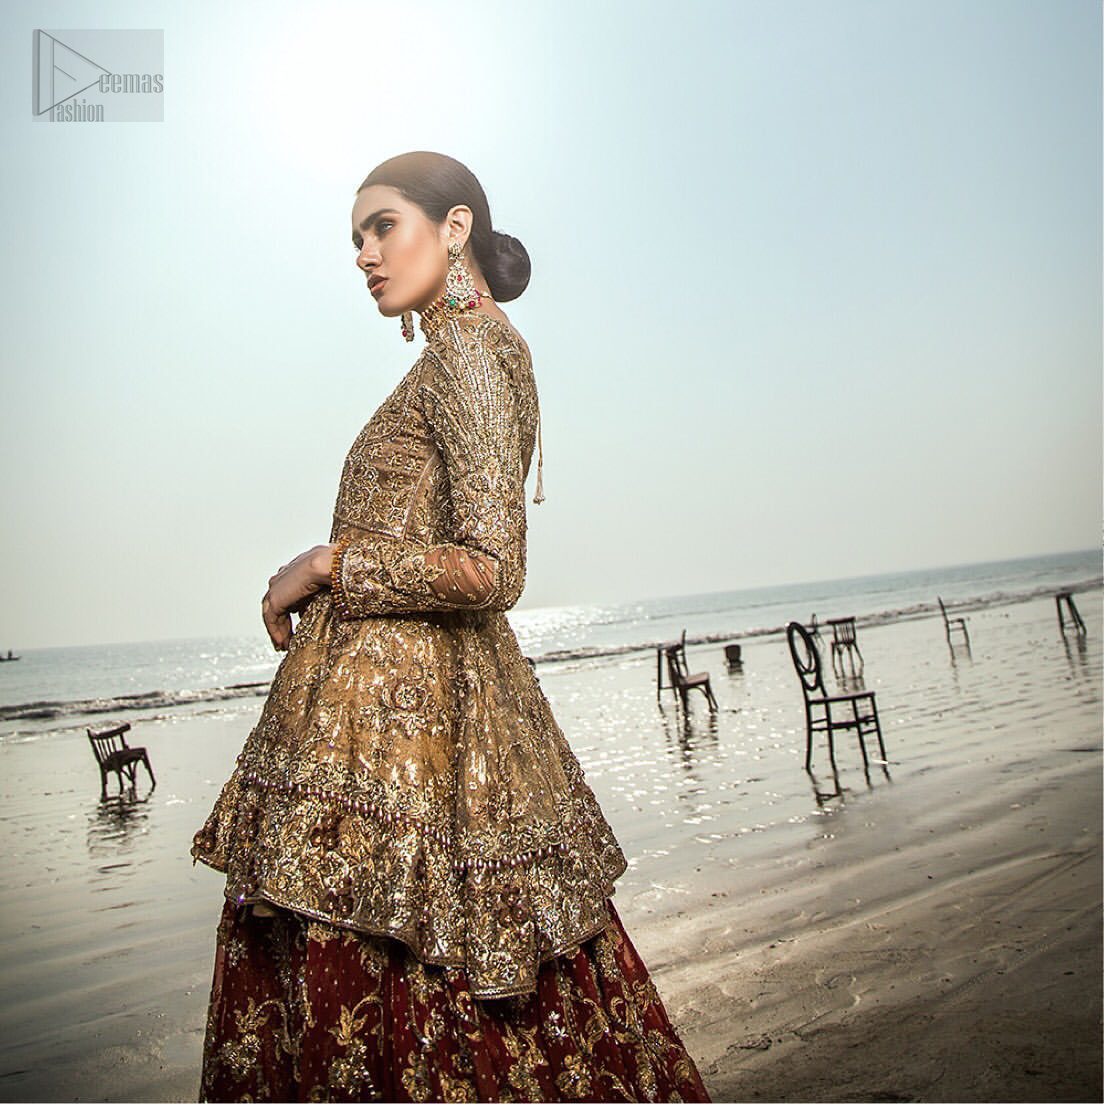 This wedding season, create a blissful aura with the treasure of love and elegance. An artistic vision of classic style and luxurious detailing infused with a bohemian spirit, transpire into a truly romantic and iconic bridal for your big day. The golden double layered peplum is heavily laden with zardozi and the perfect blend of traditional flamboyance and modern elegance in design. Pair it up with maroon lehenga enhanced with golden zardozi work. To complete the look, go with teel dupatta scattered with sequins all over the ground and heavily embellished borders to give it a perfect maharani look.